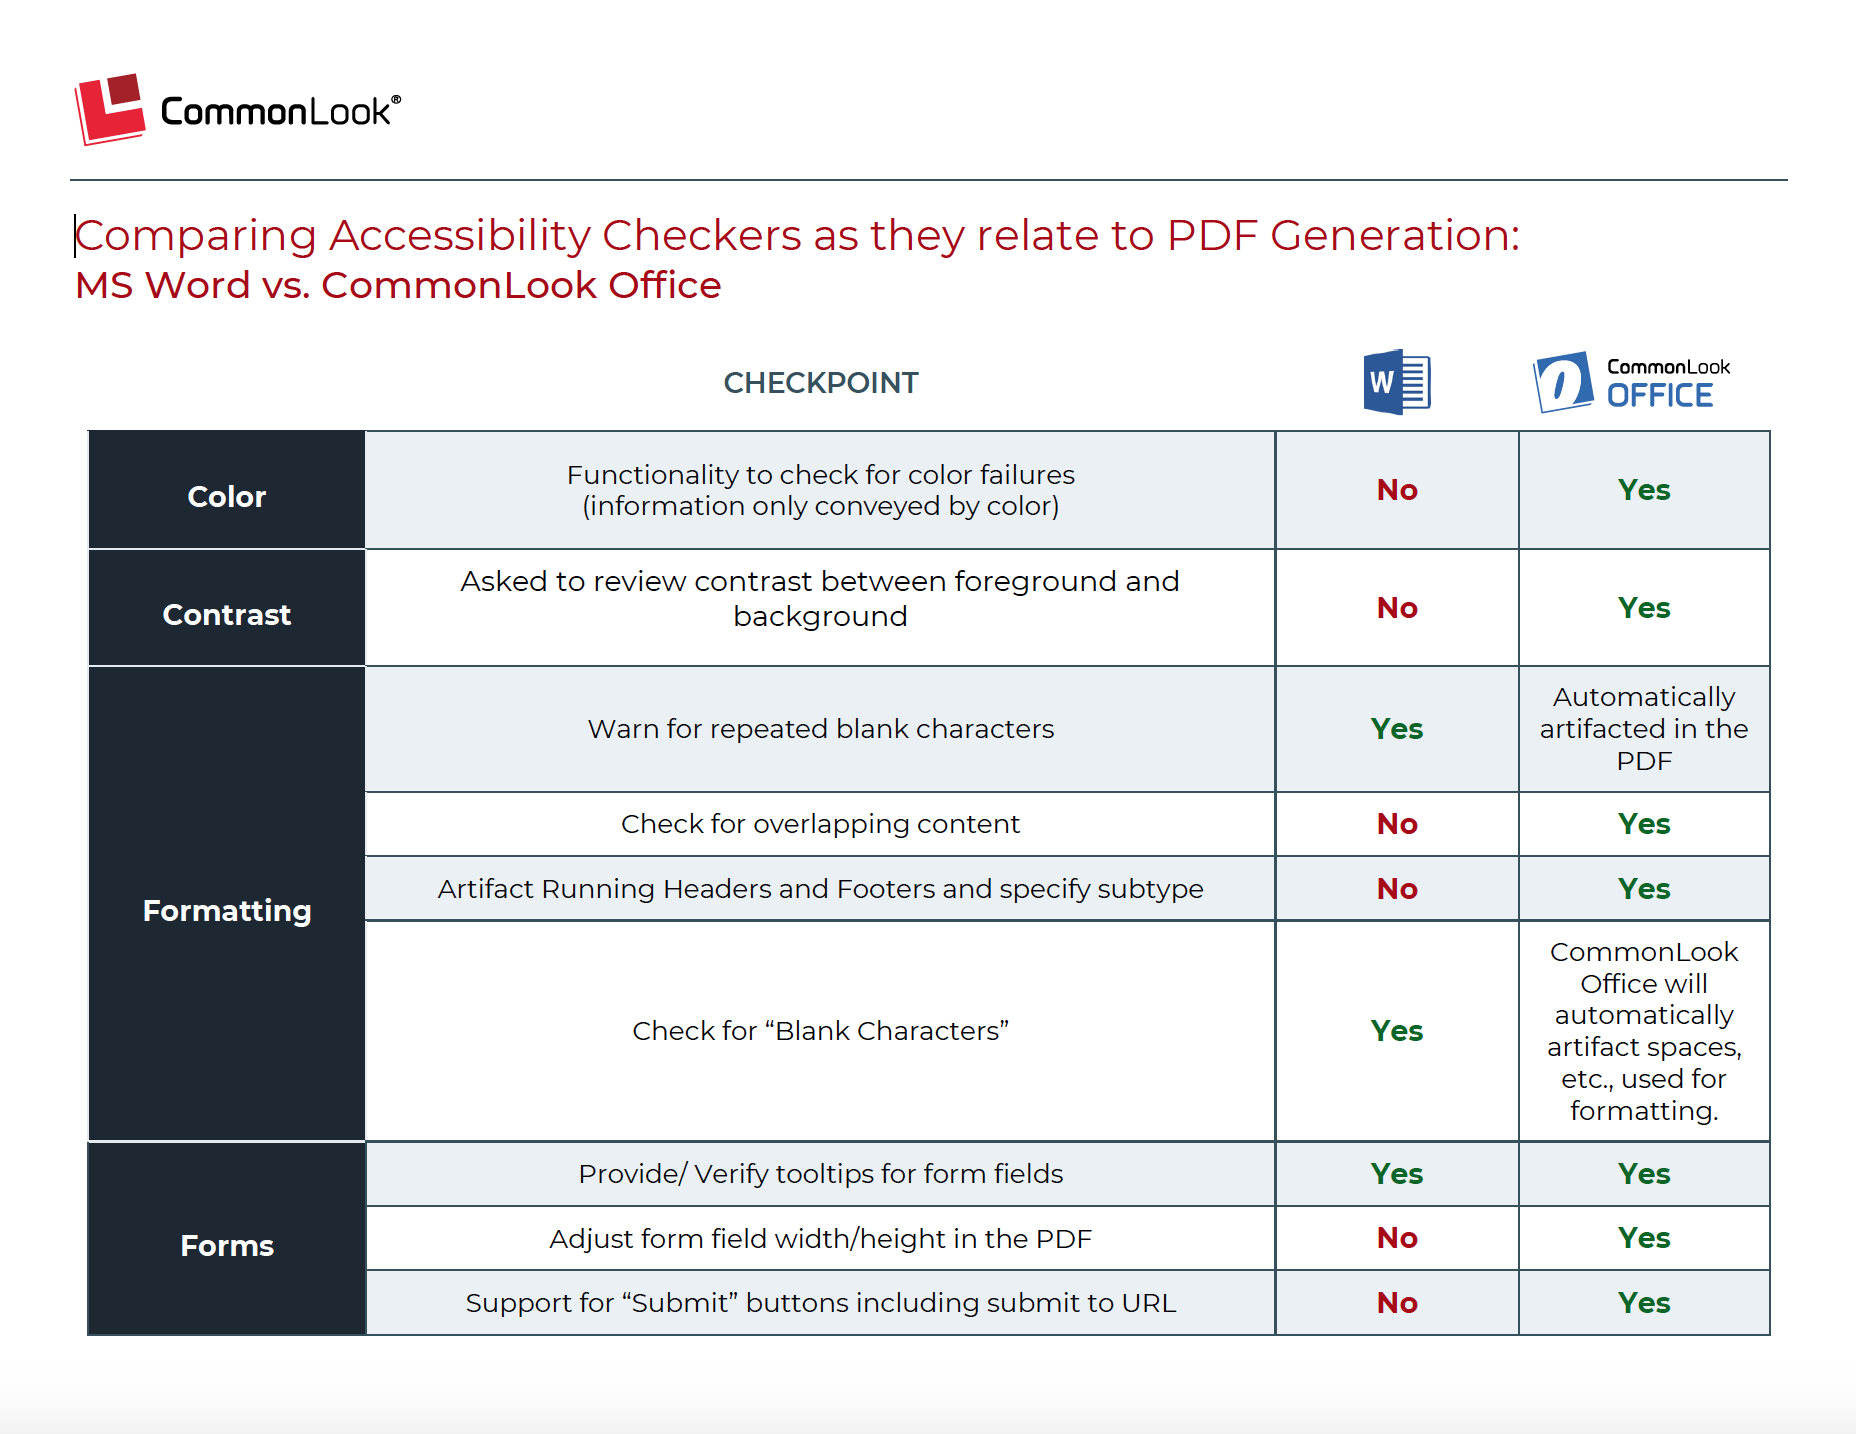 Screenshot of PDF that compares Word accessibility checkpoints with CommonLook Office accessibility checkpoints.